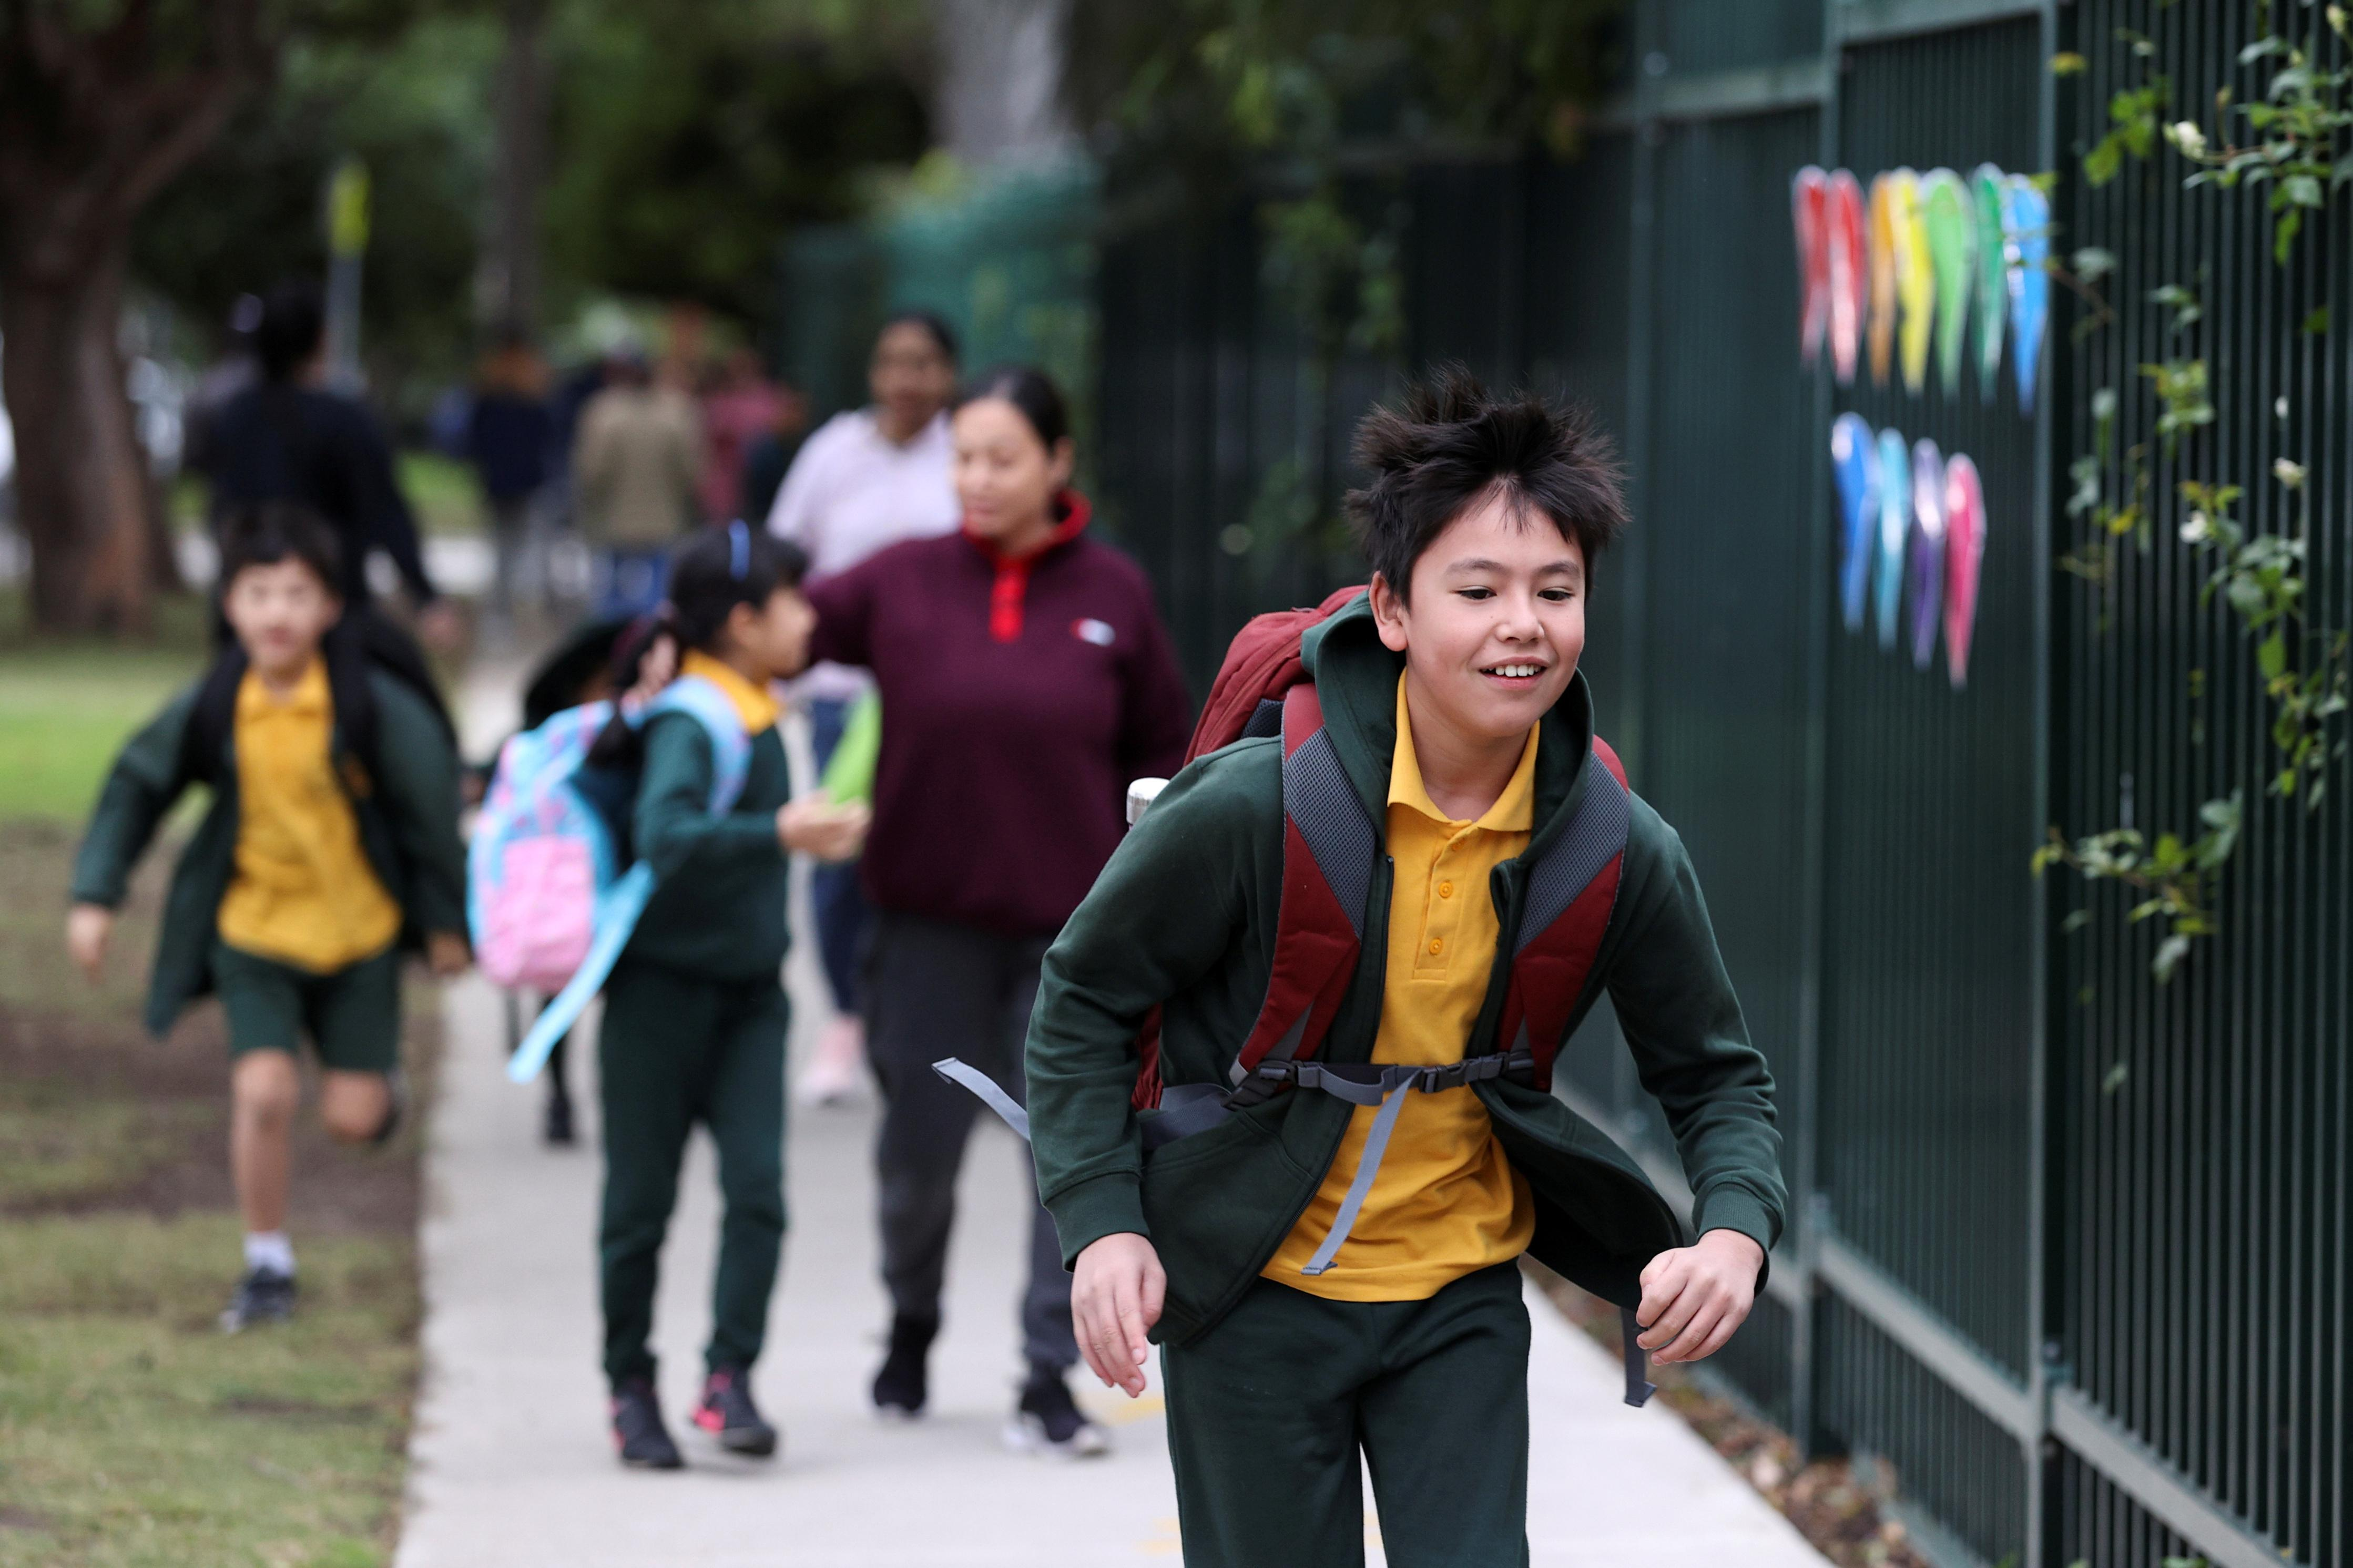 Back to school in Australia's most populous state